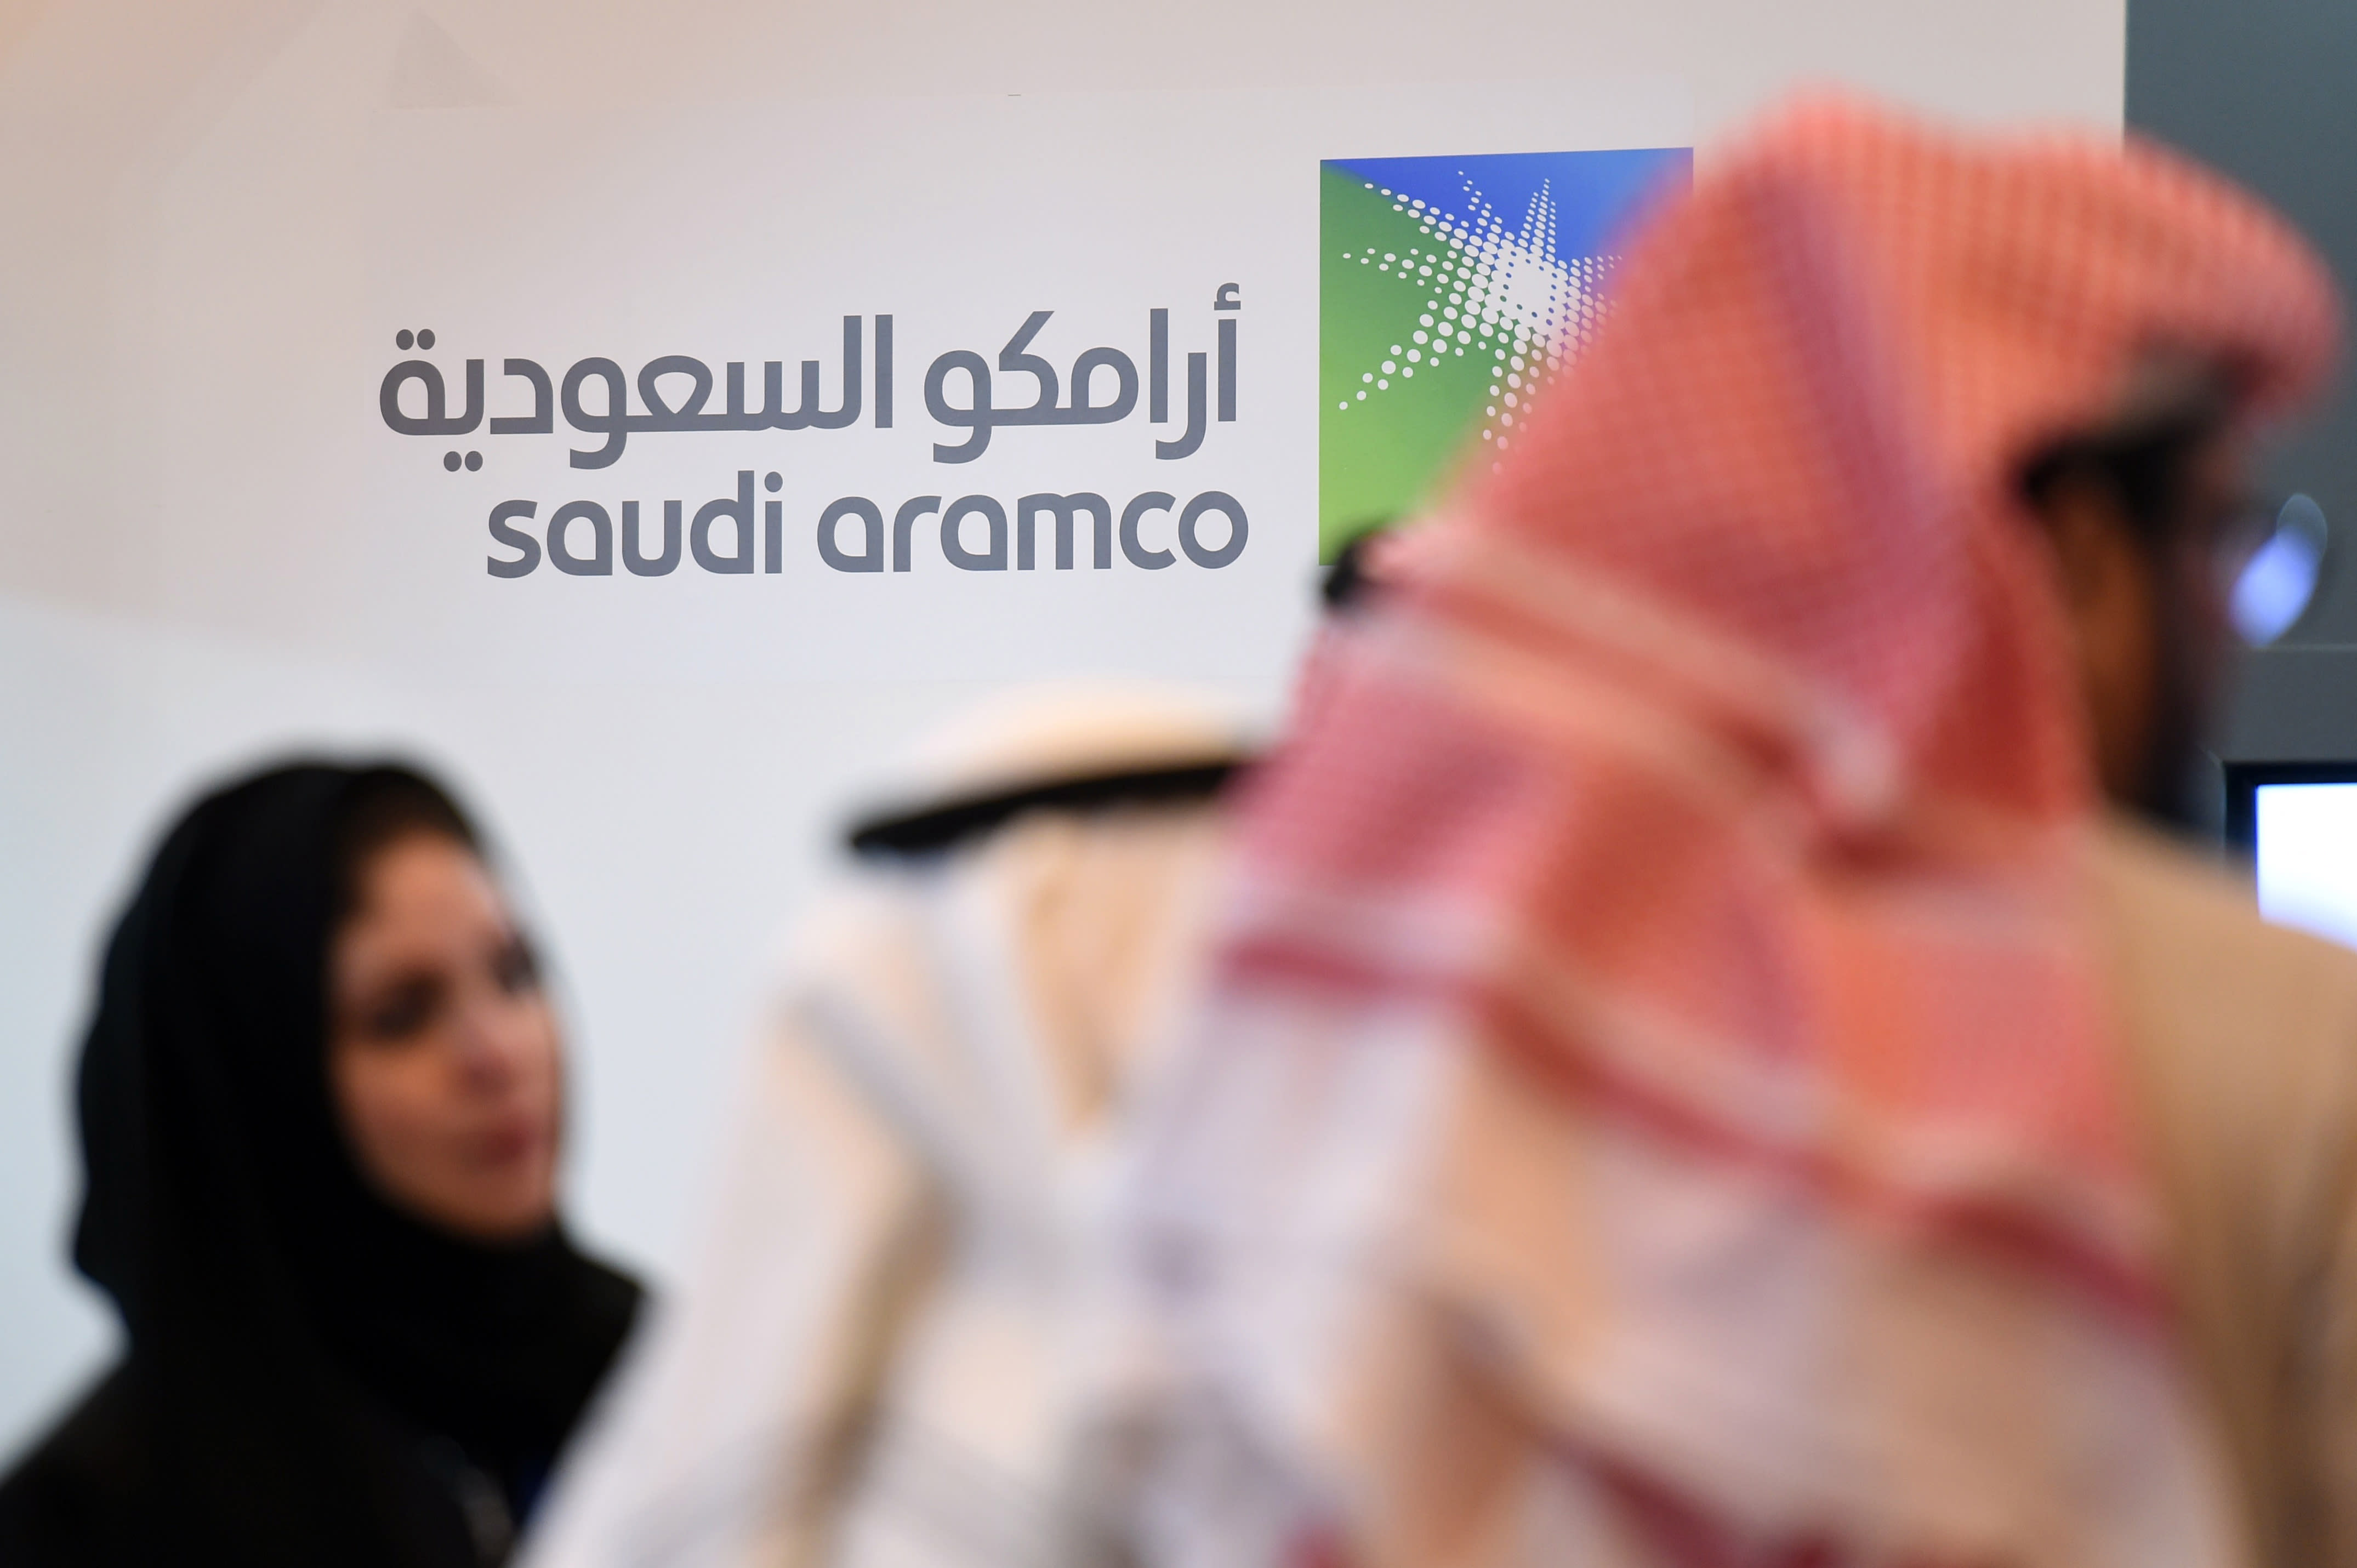 Oil production will be fully back online by end of September, Aramco IPO to stay on track, Saudis say